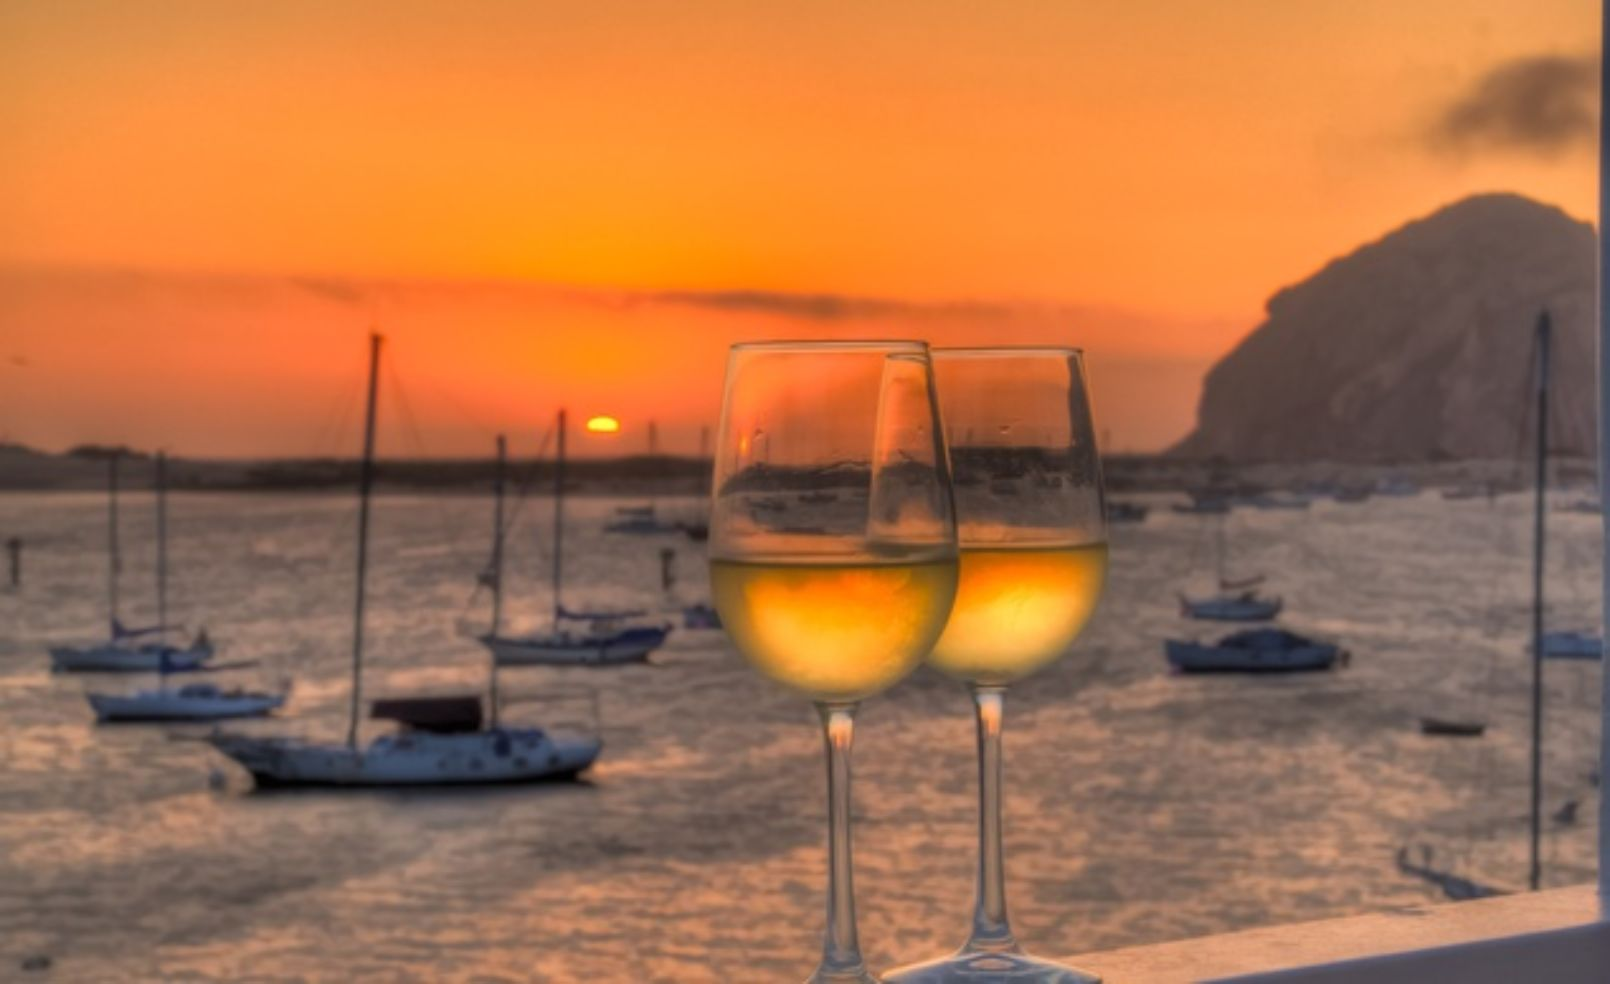 A glass of wine at sunset.